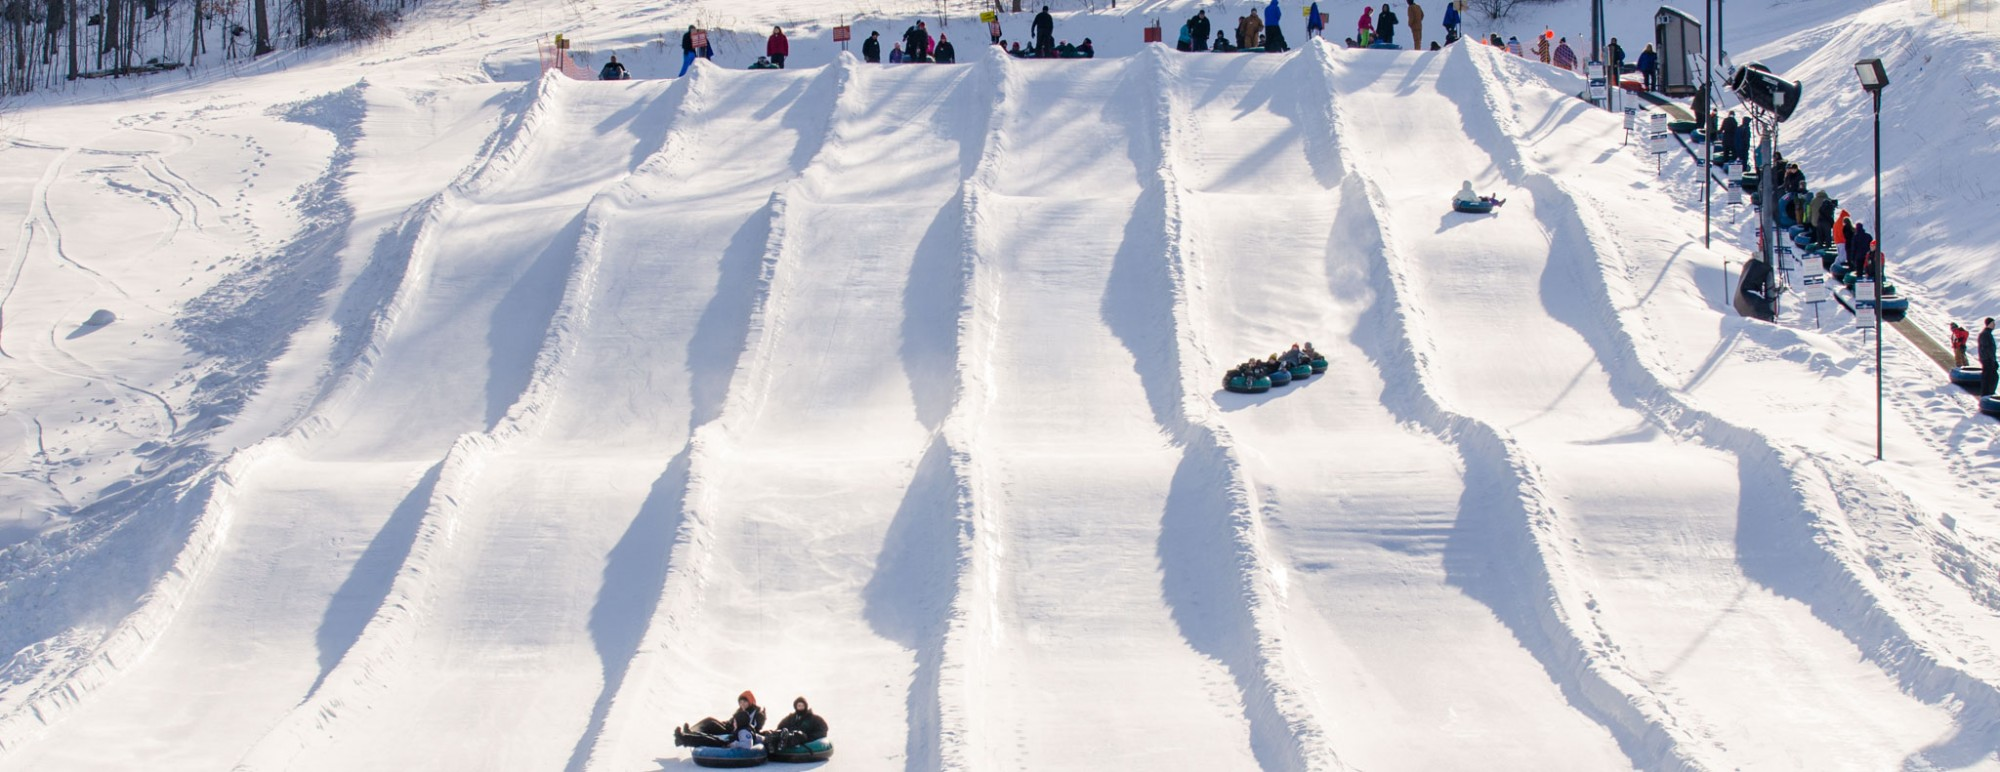 Snow Tubing at Snow Trails Vertical Descent Tubing Park